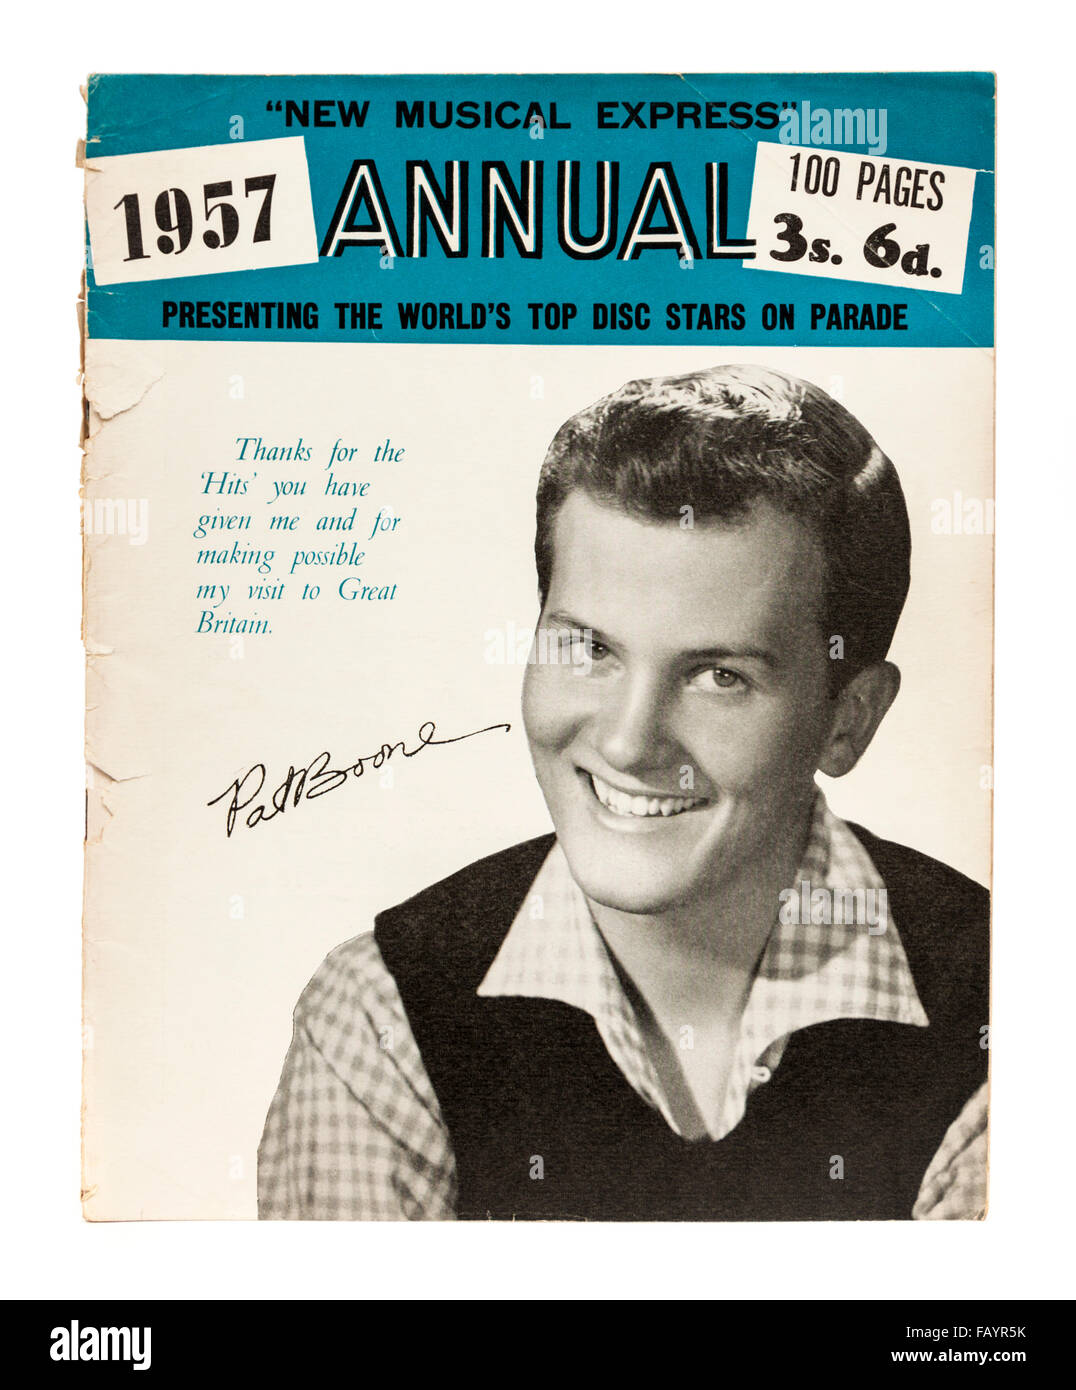 Vintage 1957 copy of the New Musical Express (NME) music magazine annual with Pat Boone on the front cover. Stock Photo